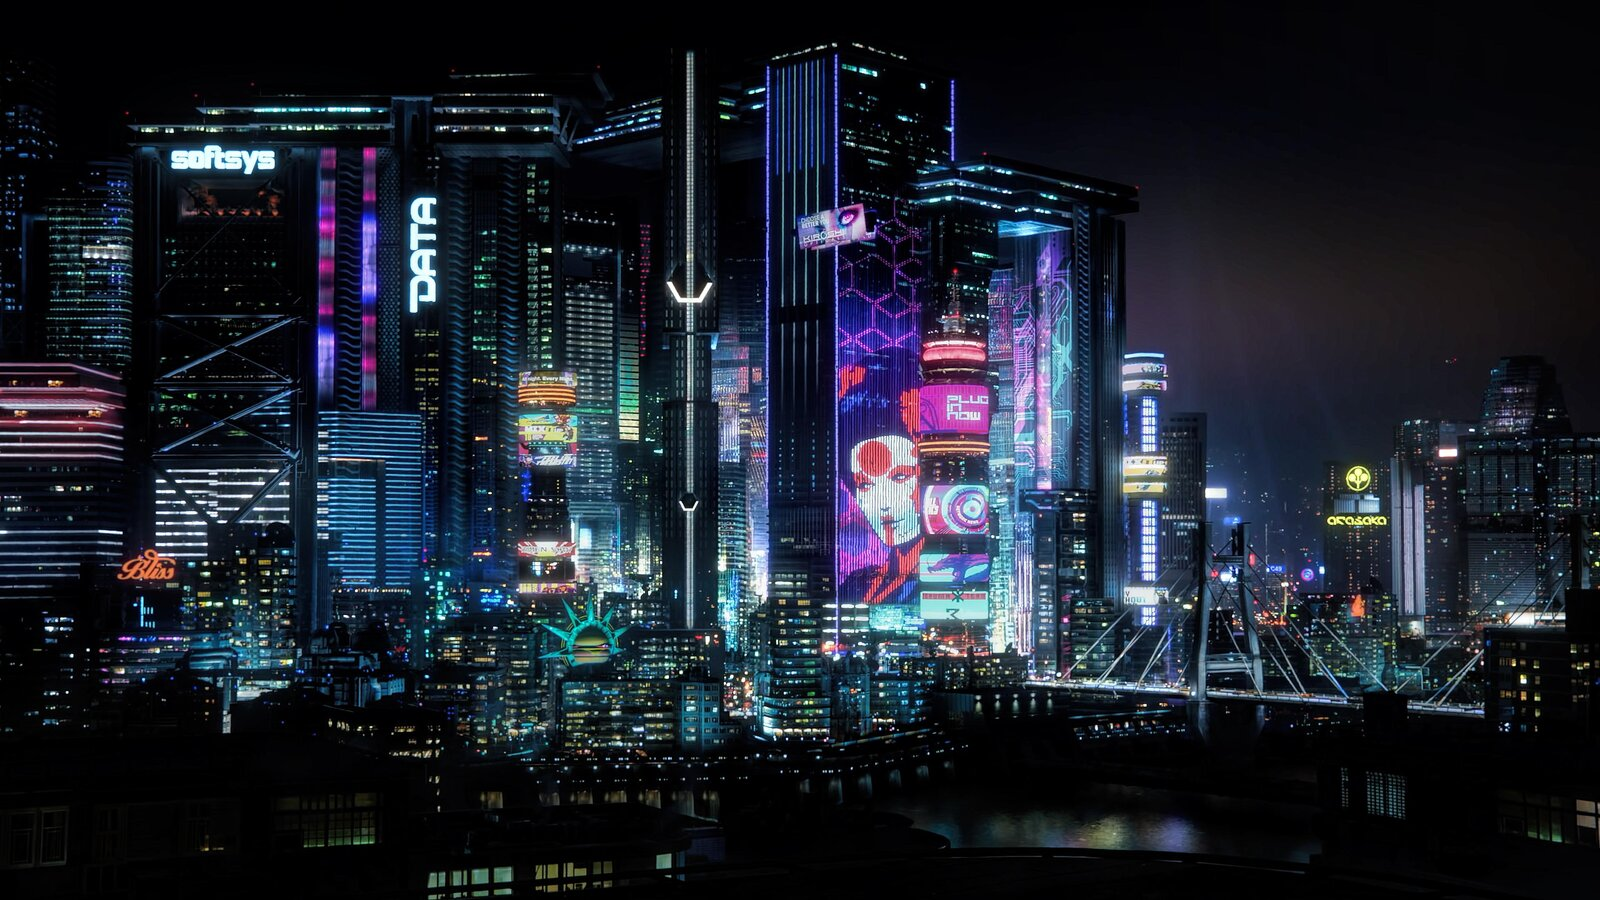 Cyberpunk_2077-Night_City_Buildings.jpg